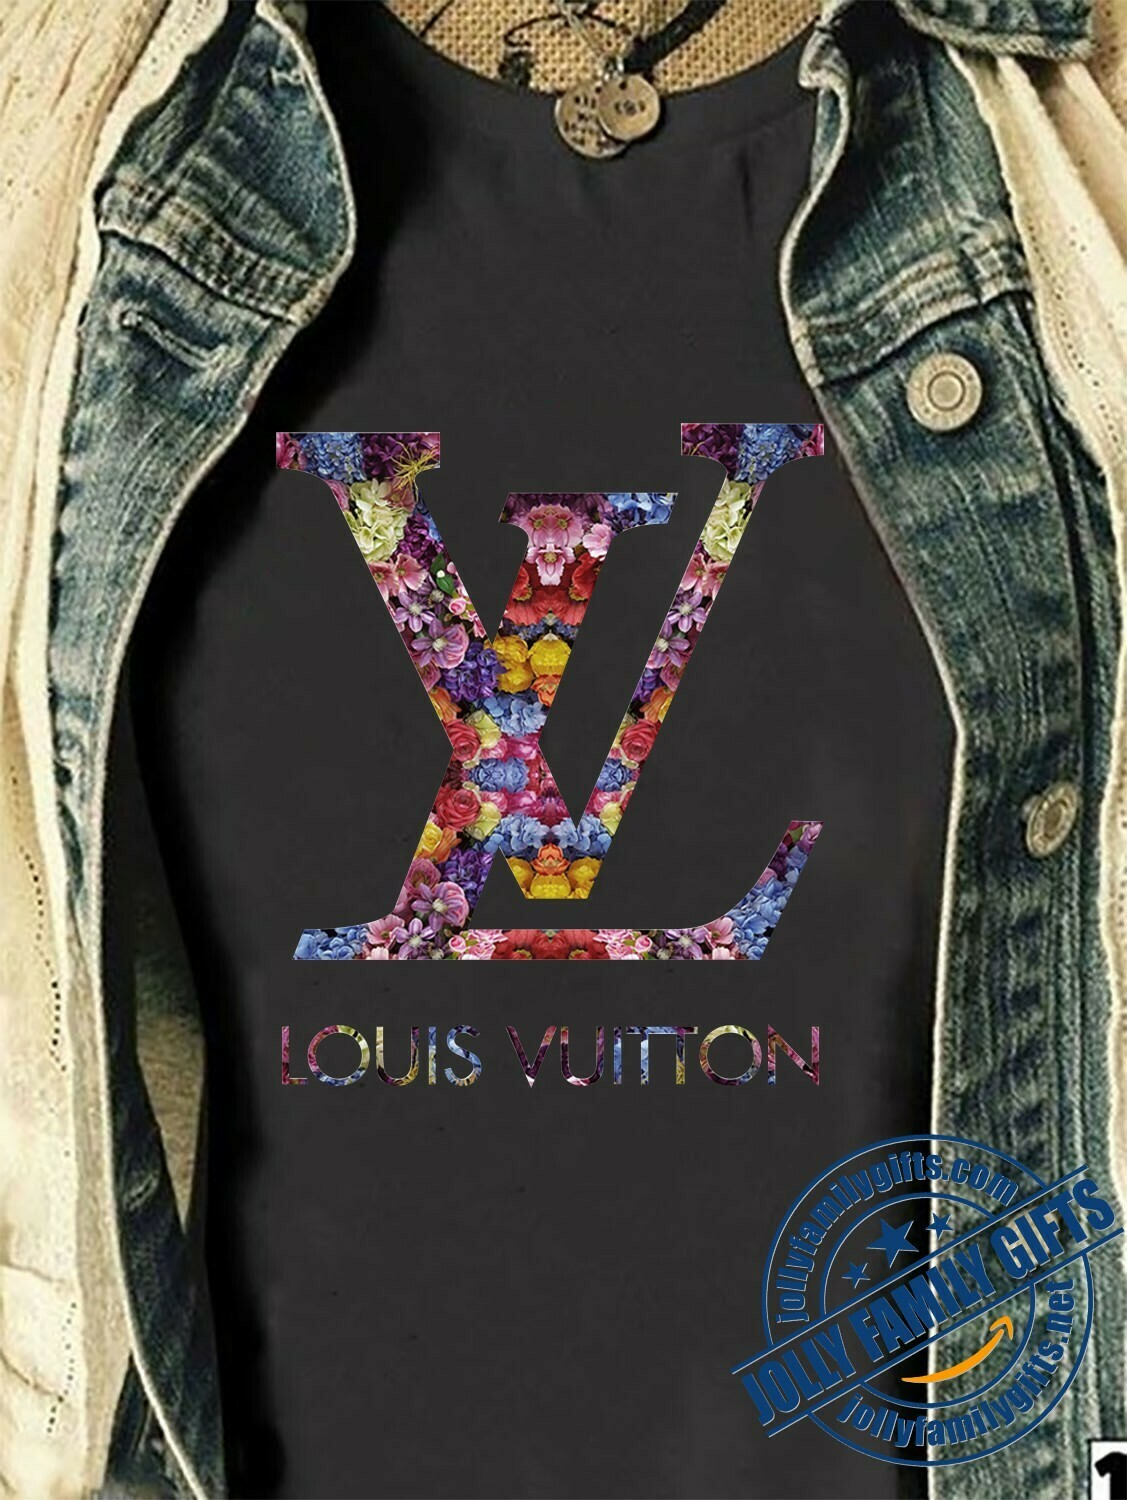 Classic Logo Louis Vuitton Flower Shirt LV T-shirt Louis Vuitton Logo Fashion LV Design Fashion for Women Men Vintage  Unisex T-Shirt Hoodie Sweatshirt Sweater for Ladies Women Men Kids Youth Gifts